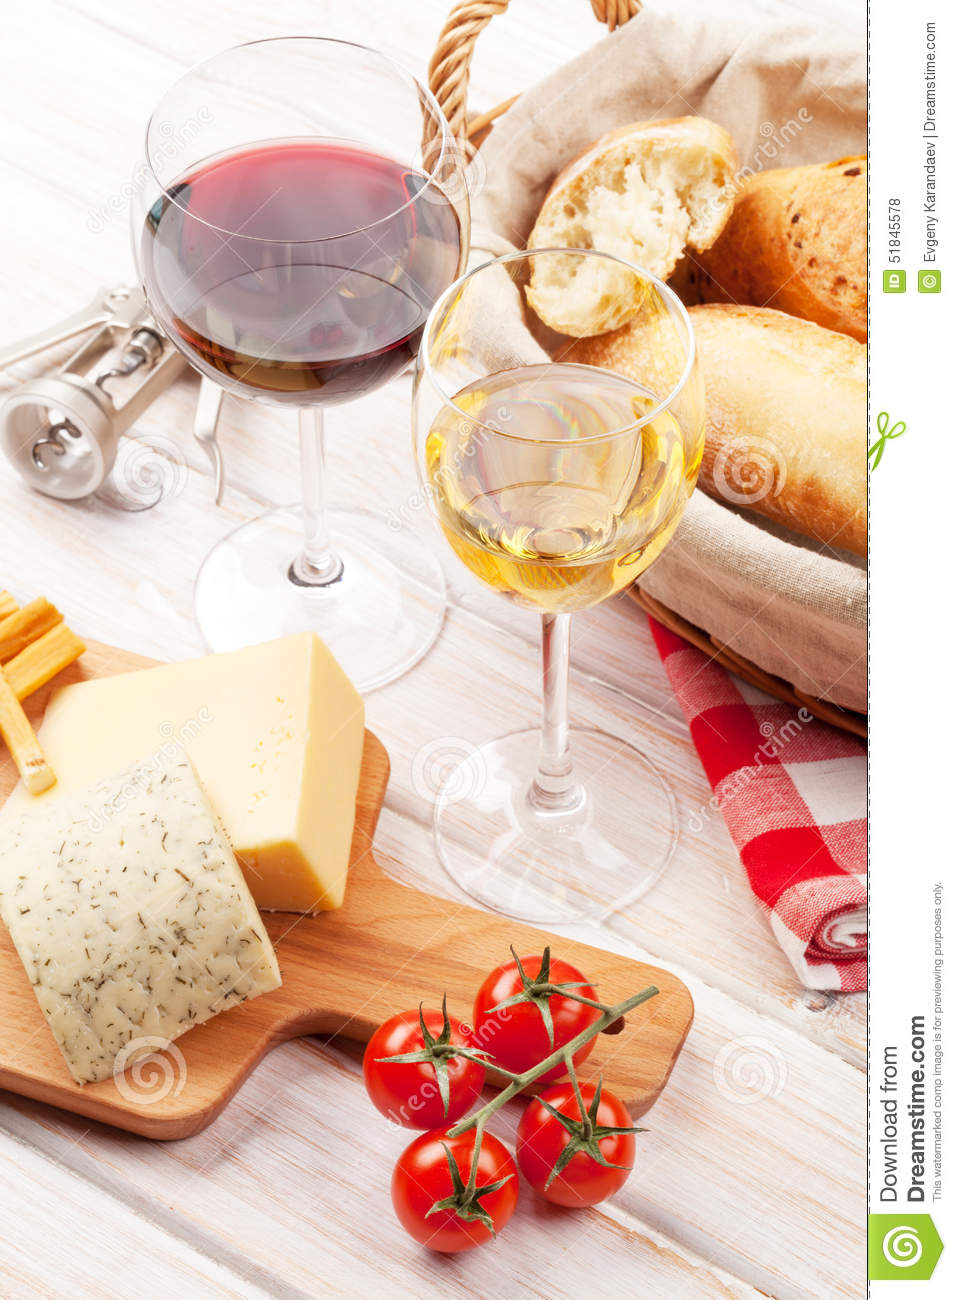 vin blanc et rouge fromage et pain photo stock image 51845578. Black Bedroom Furniture Sets. Home Design Ideas